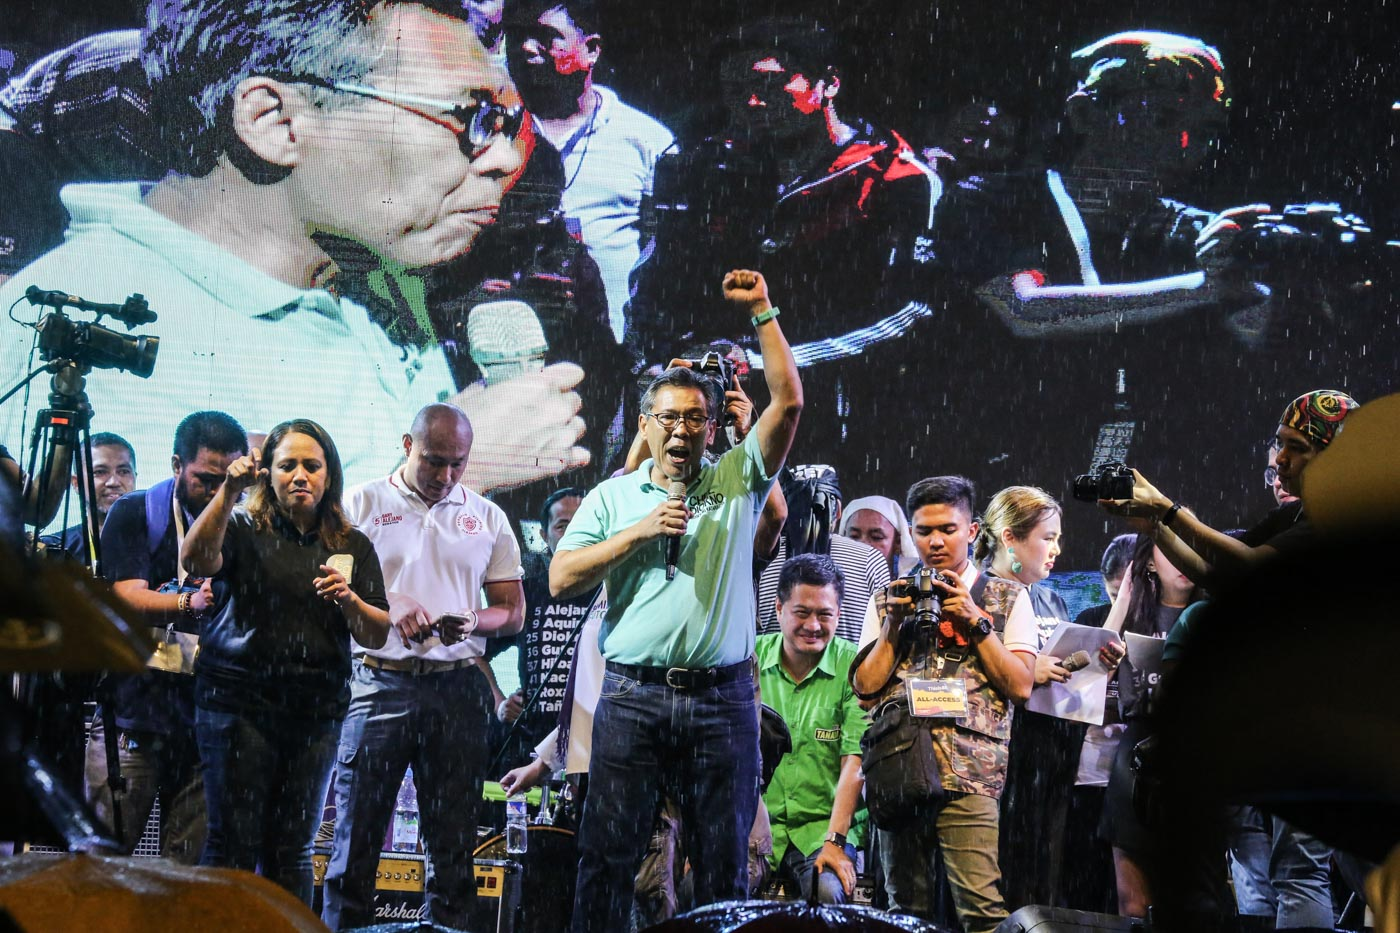 THE GOOD FIGHT. Human rights lawyer Chel Diokno rallies the crowd.